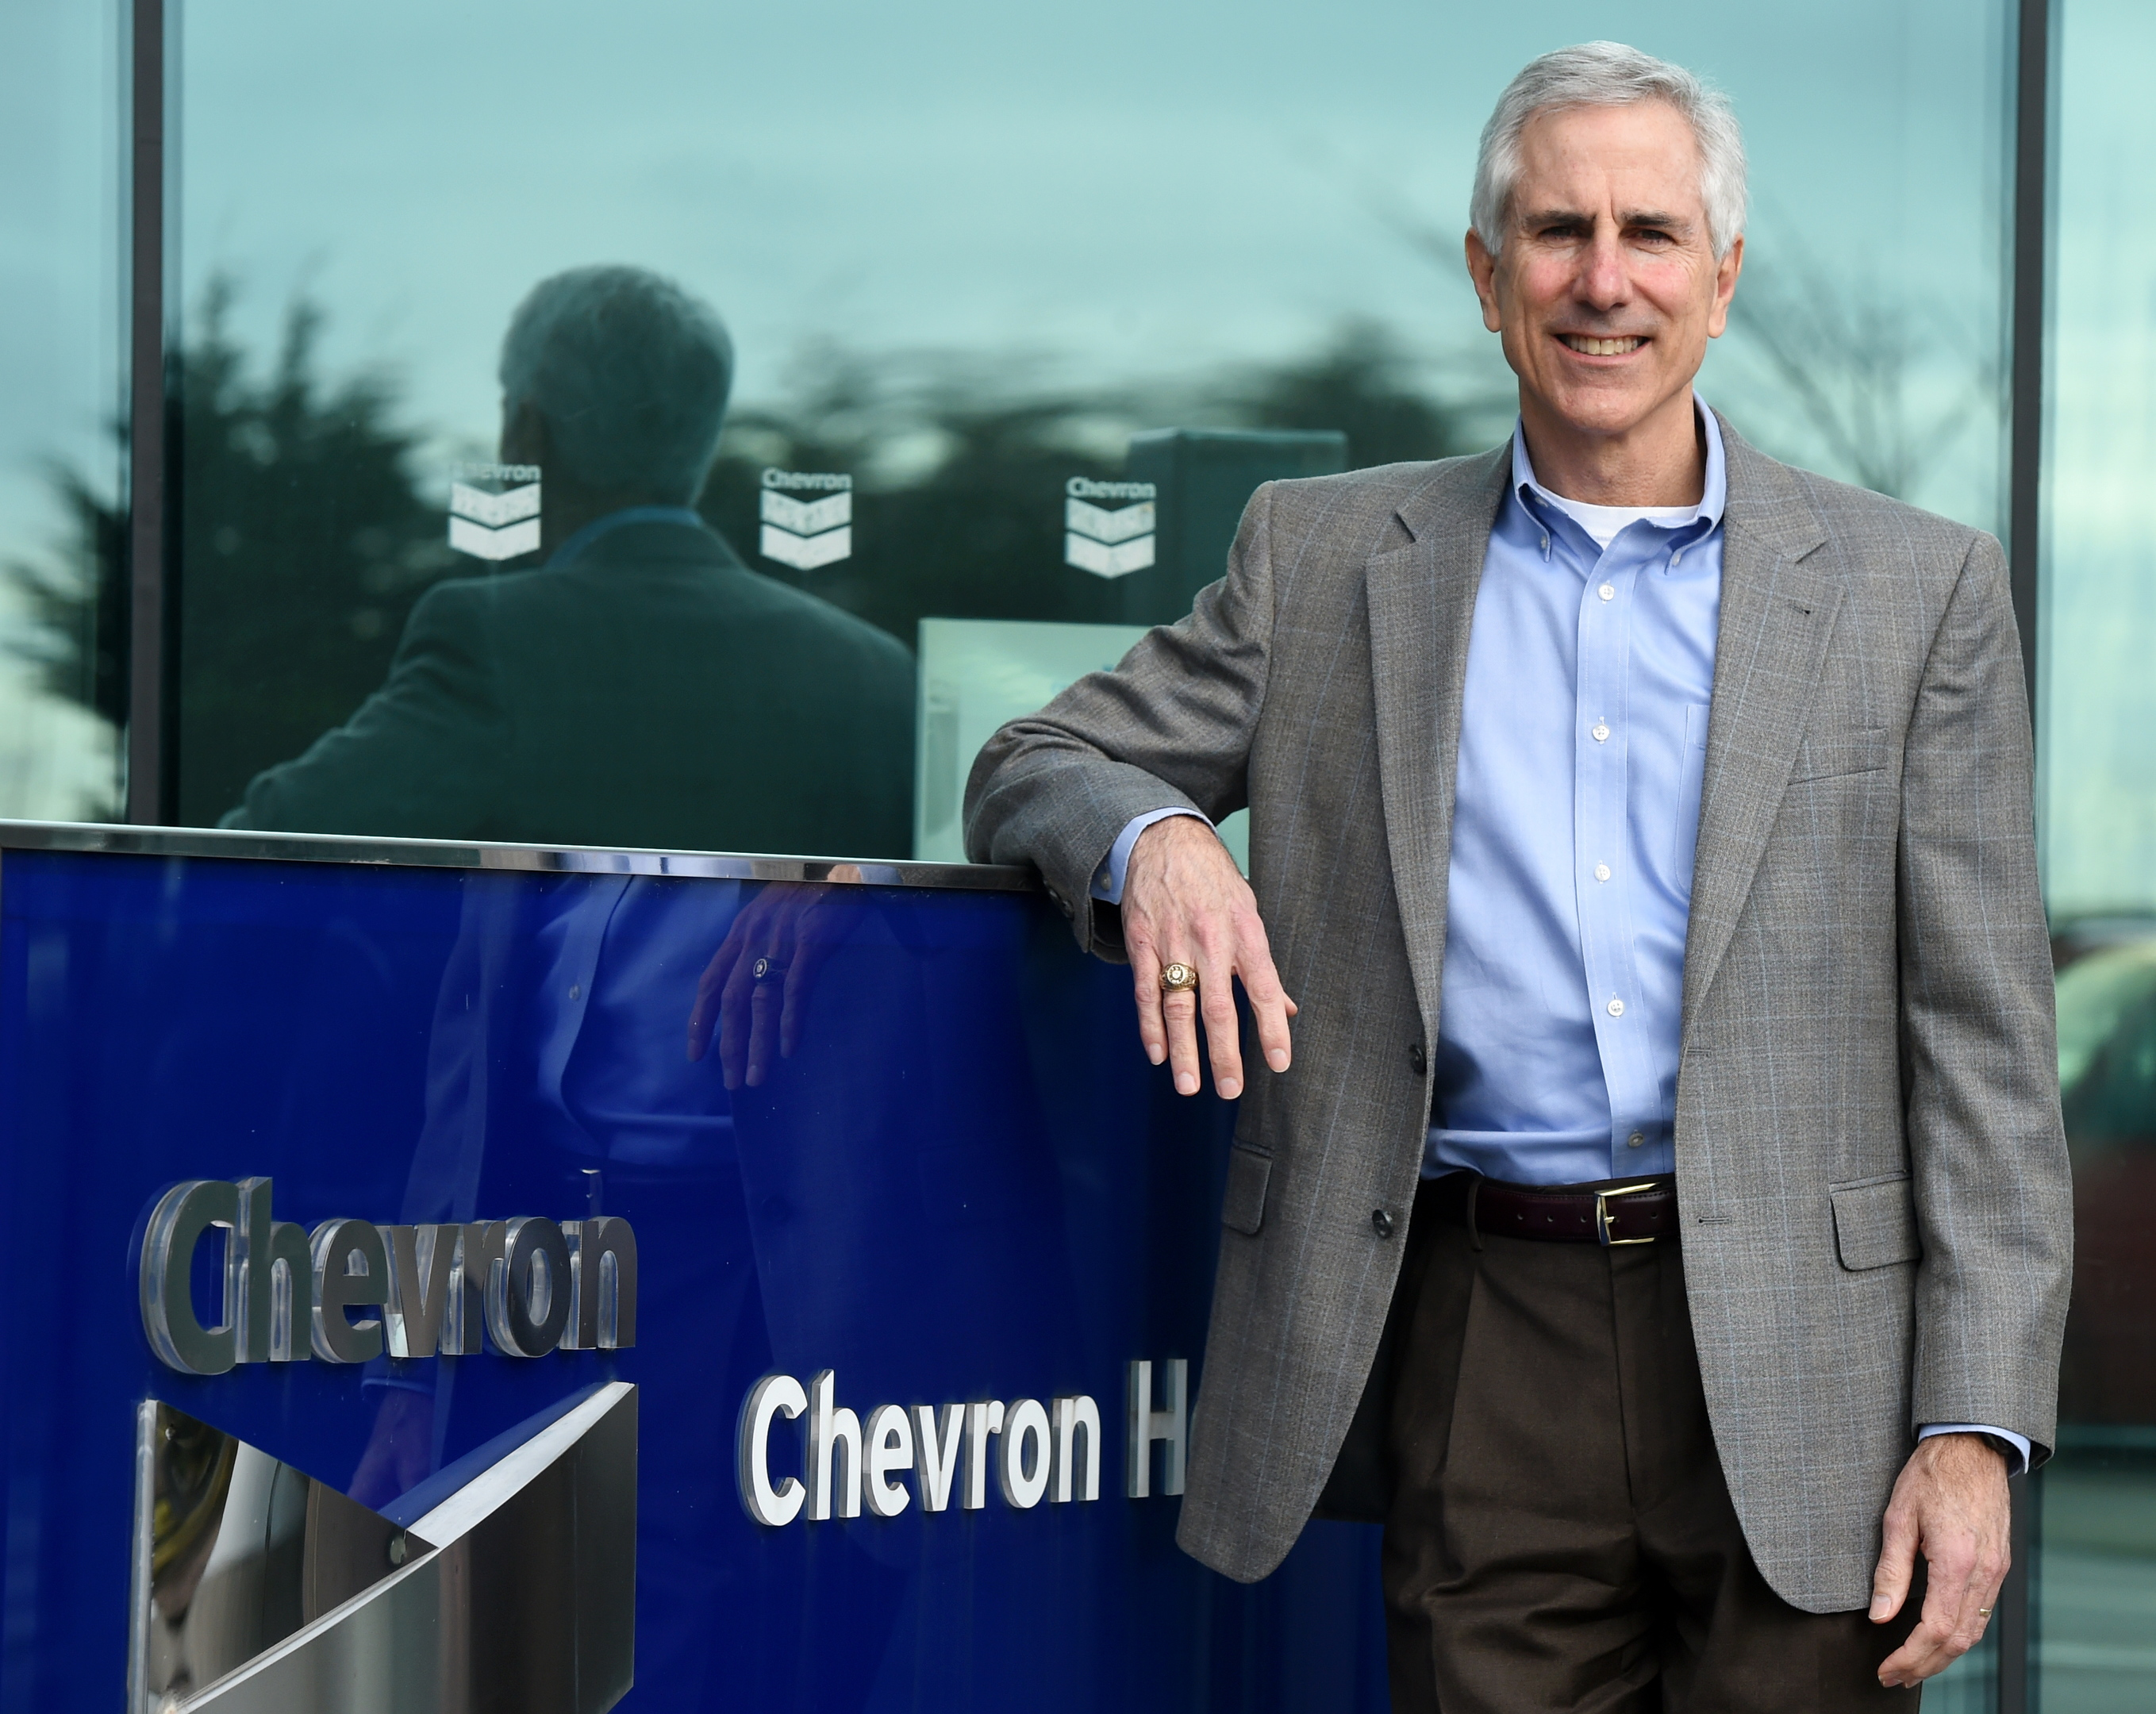 Kevin Ricketts, general manager, Chevron Upstream Europe, pictured at Chevron, Hill of Rubislaw, Aberdeen.